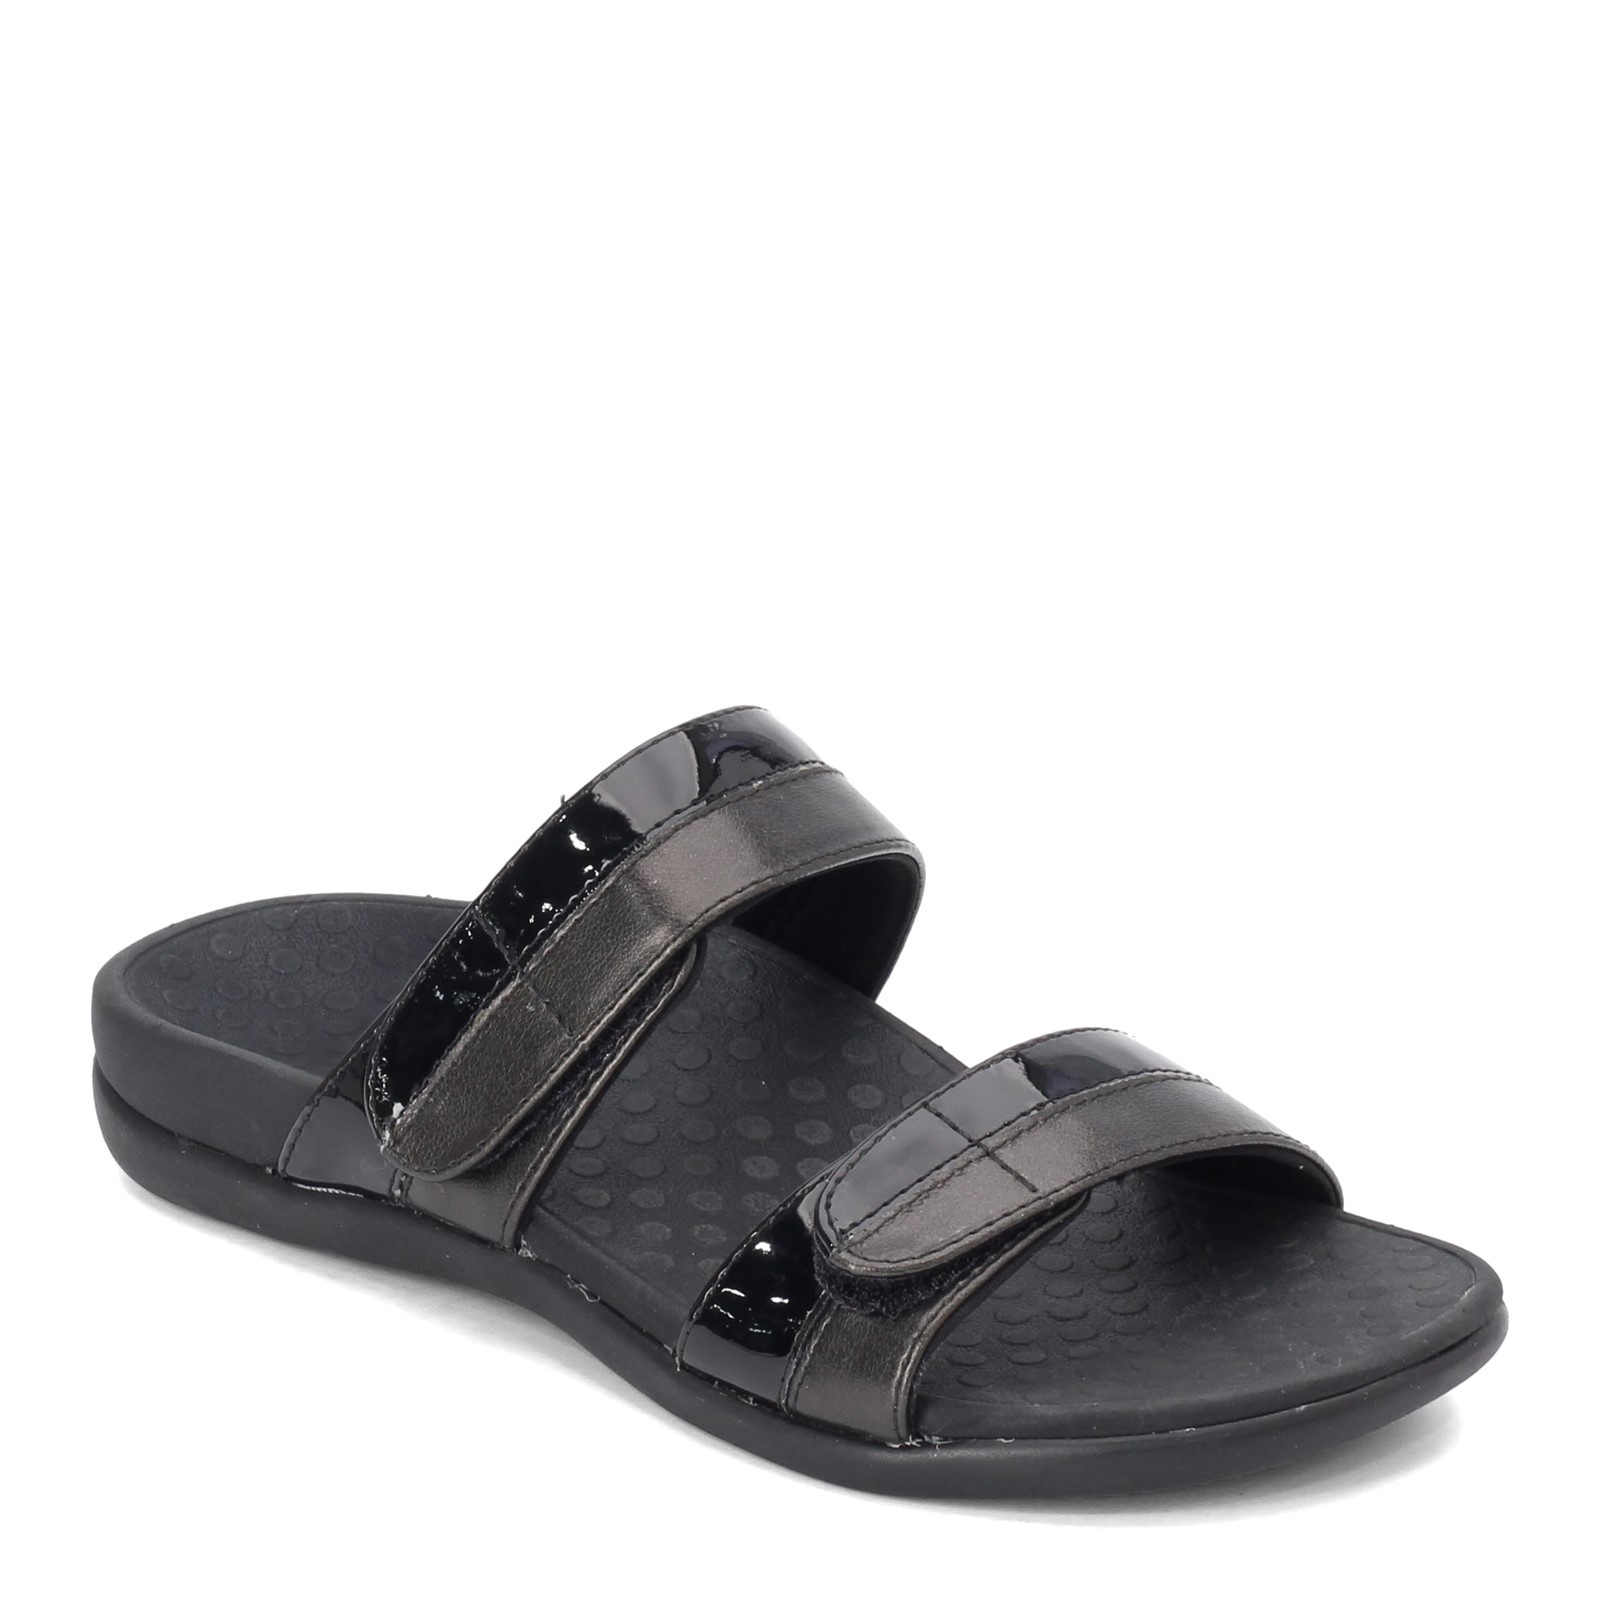 Women's Vionic, Shore Slide Sandal